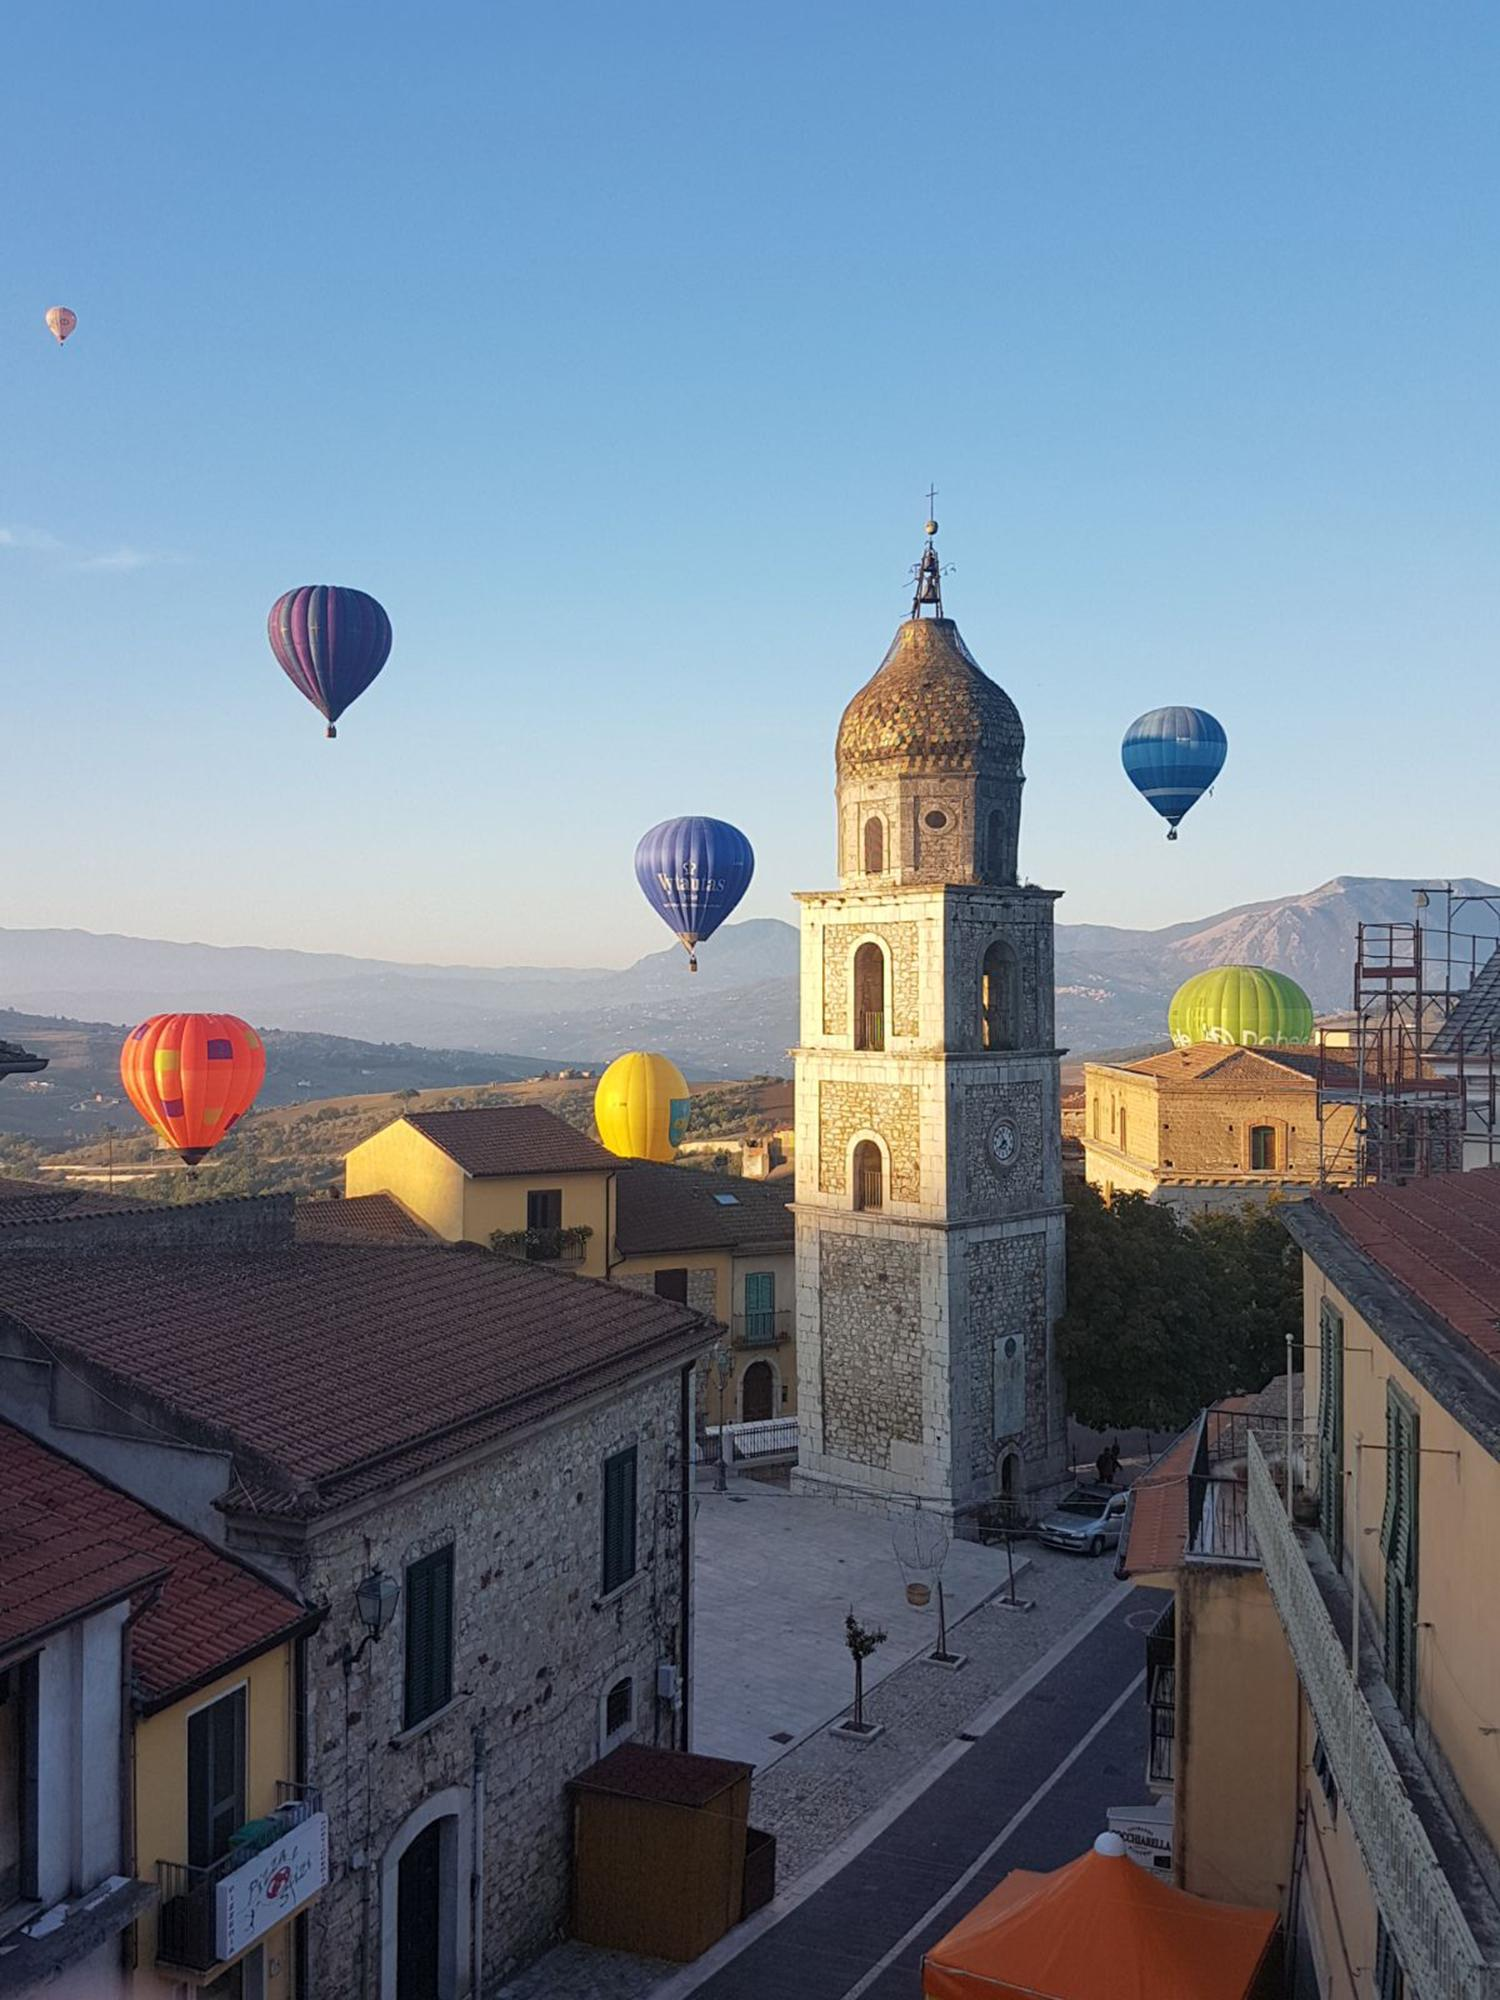 Balloons in flight over the churchyard of St. Nicholas and St. Rocco with the bell tower. – © Archivio Balooning Festival